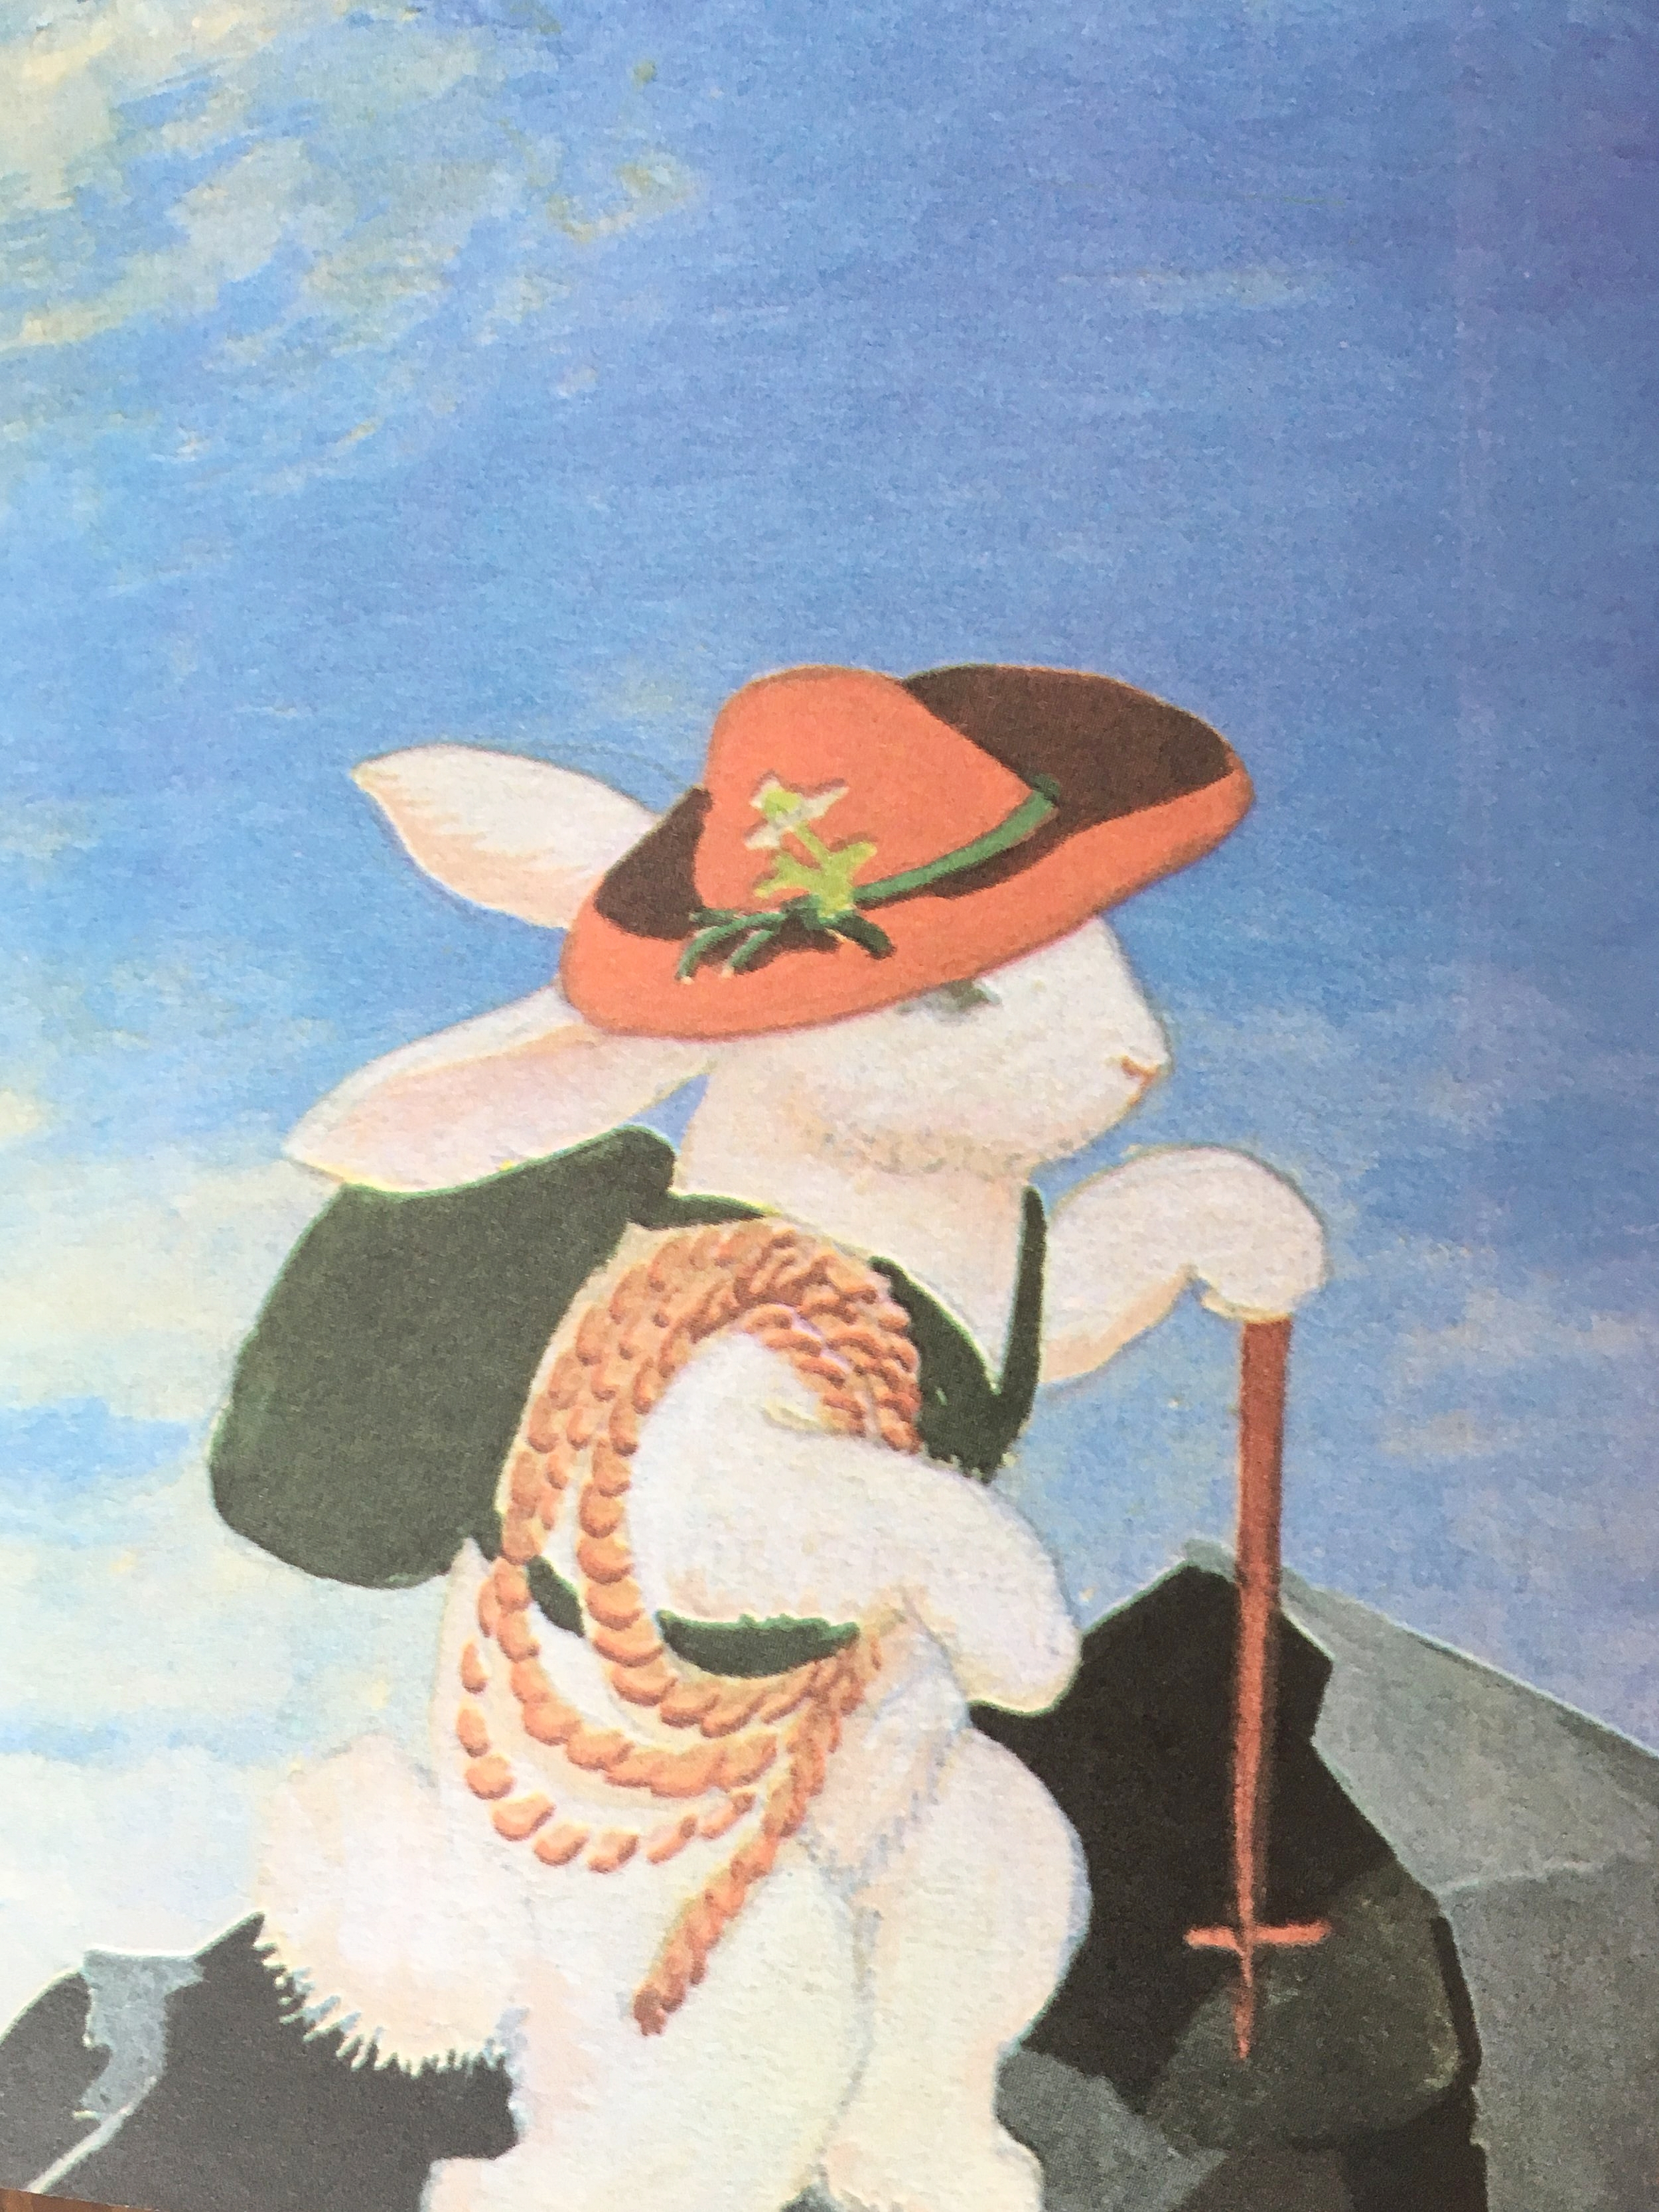 The Runaway Bunny ~ illustrations by Clement Hurd